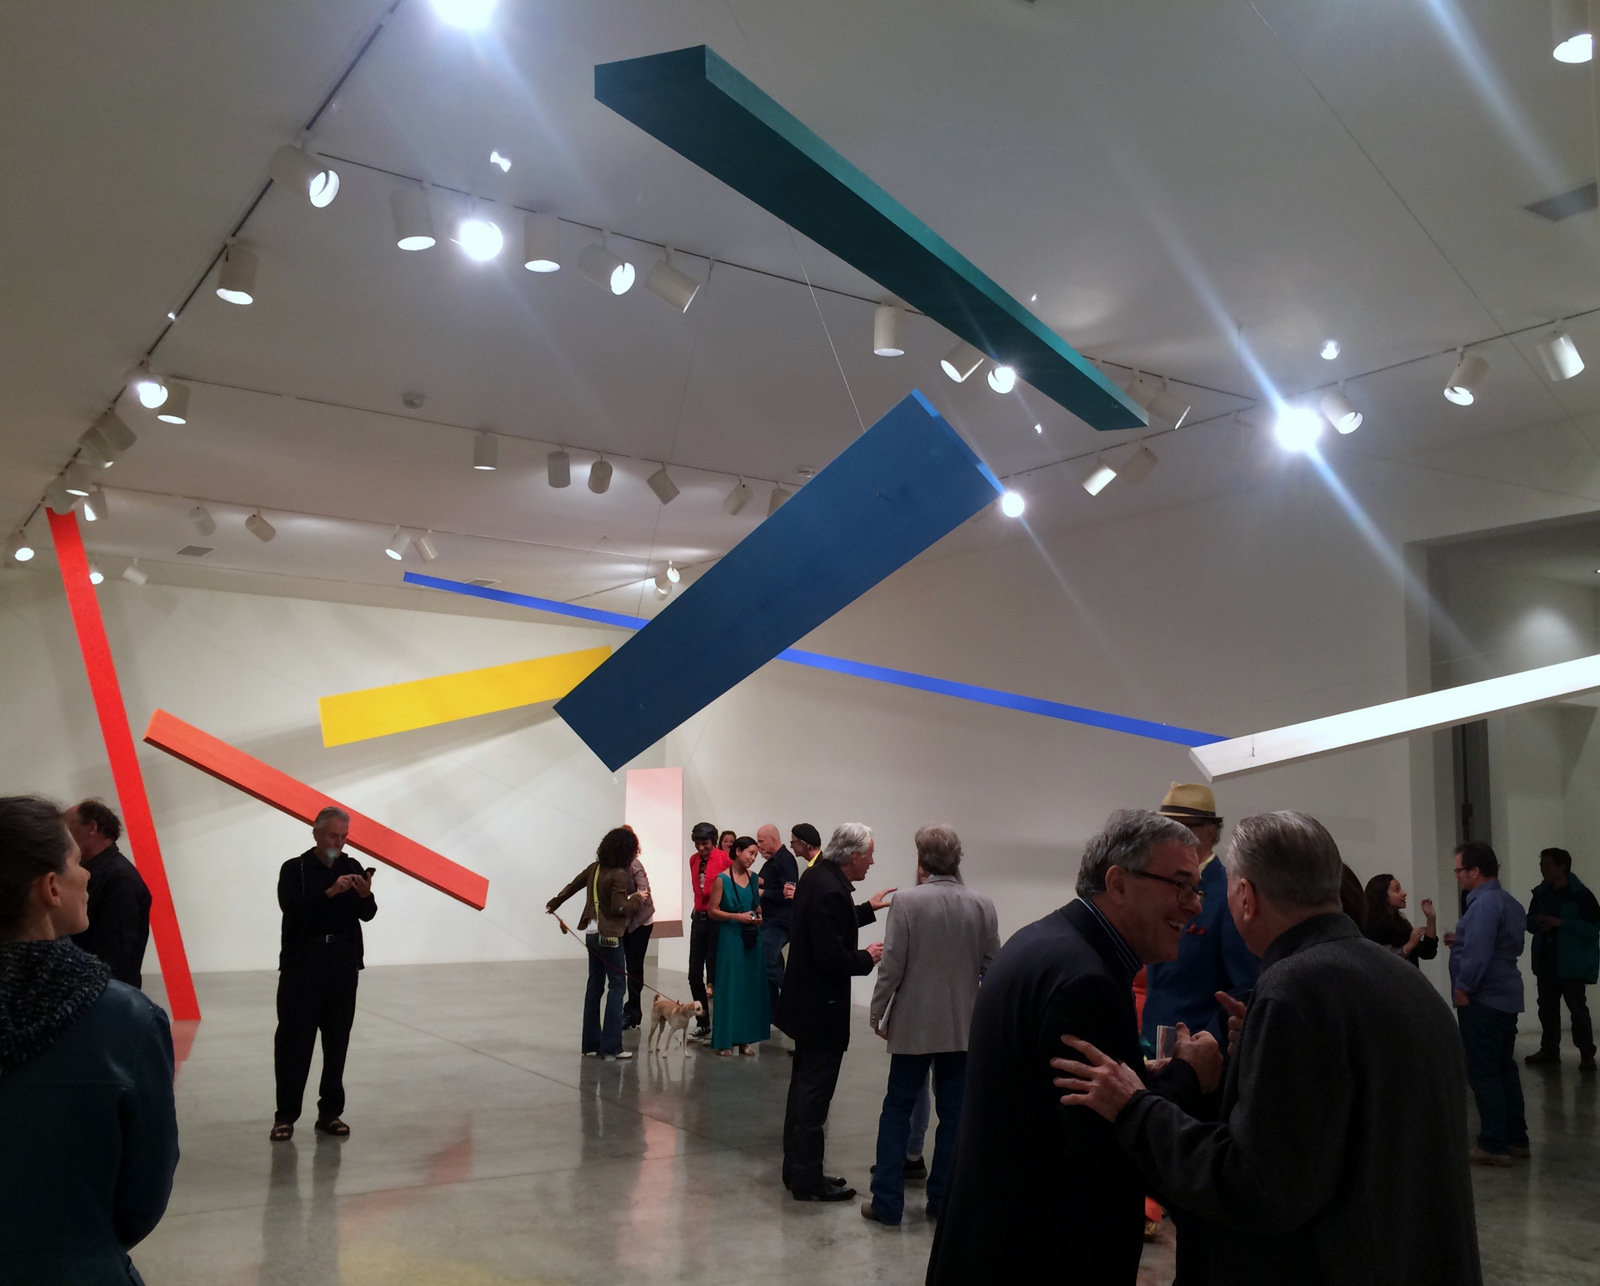 Joel Shapiro, installation at L.A. Louver, 2013